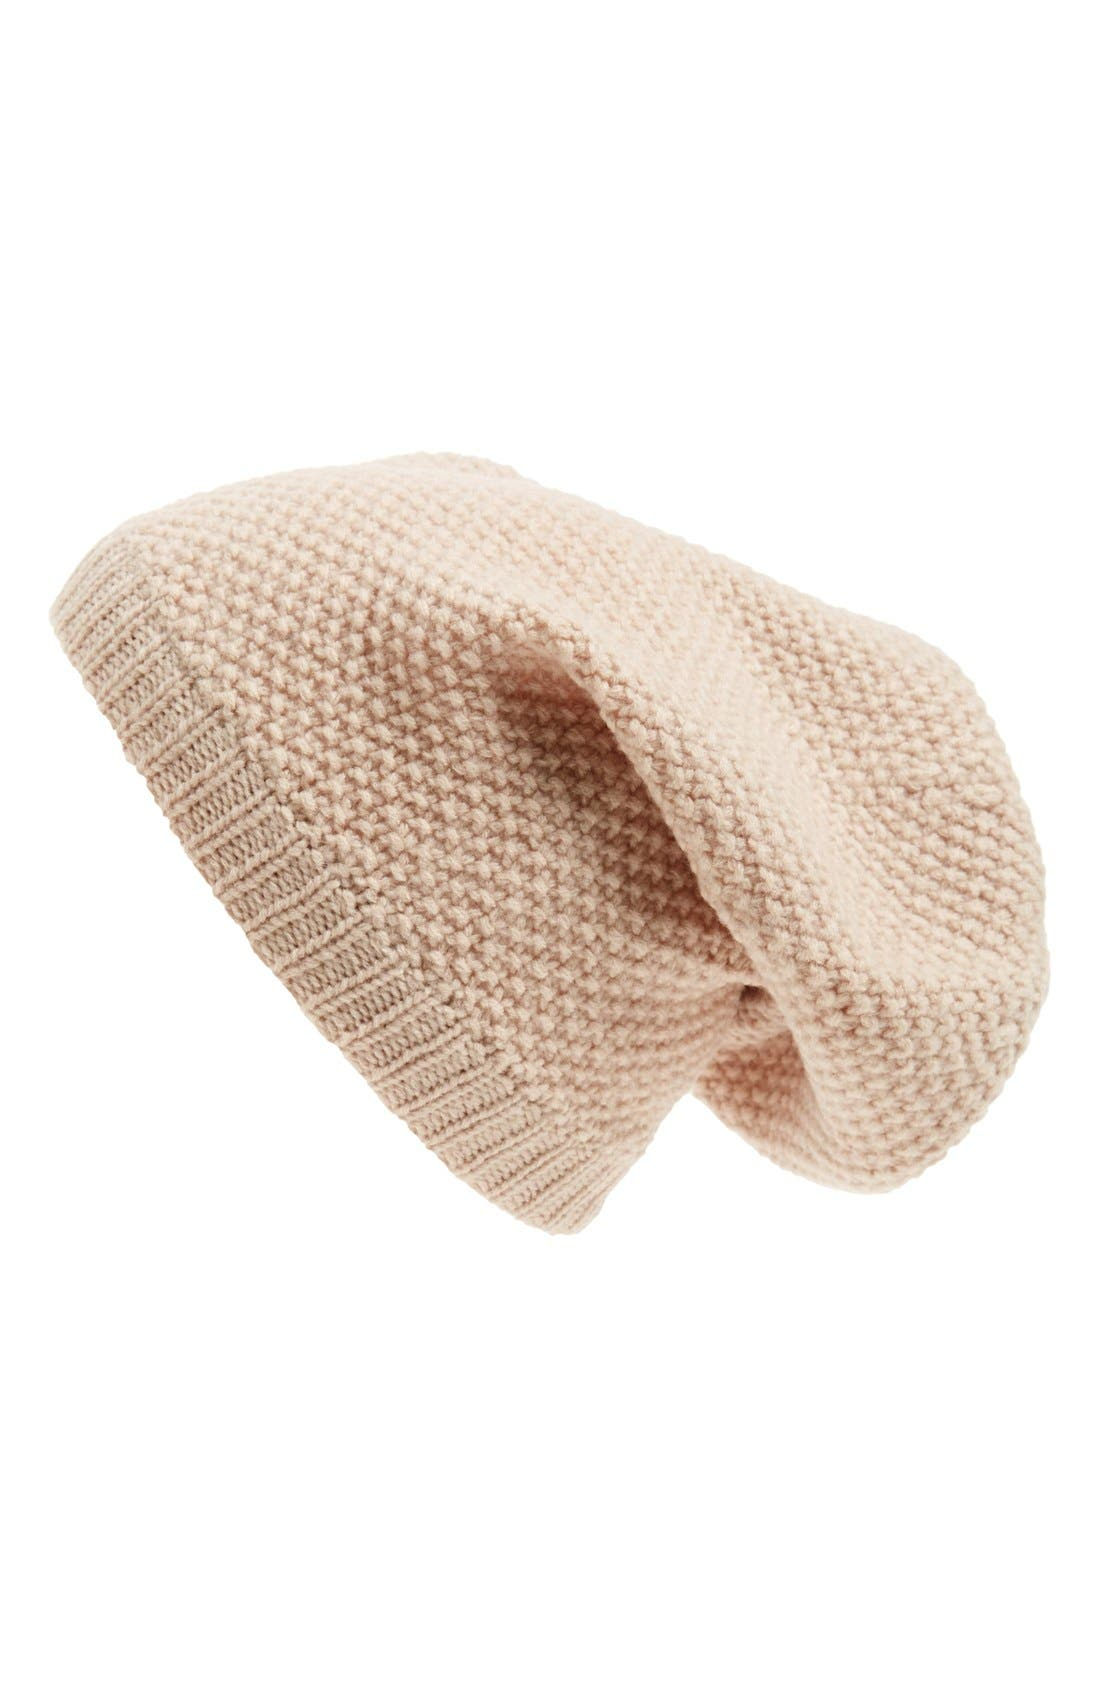 Alternate Image 1 Selected - Sole Society Wool Knit Beanie